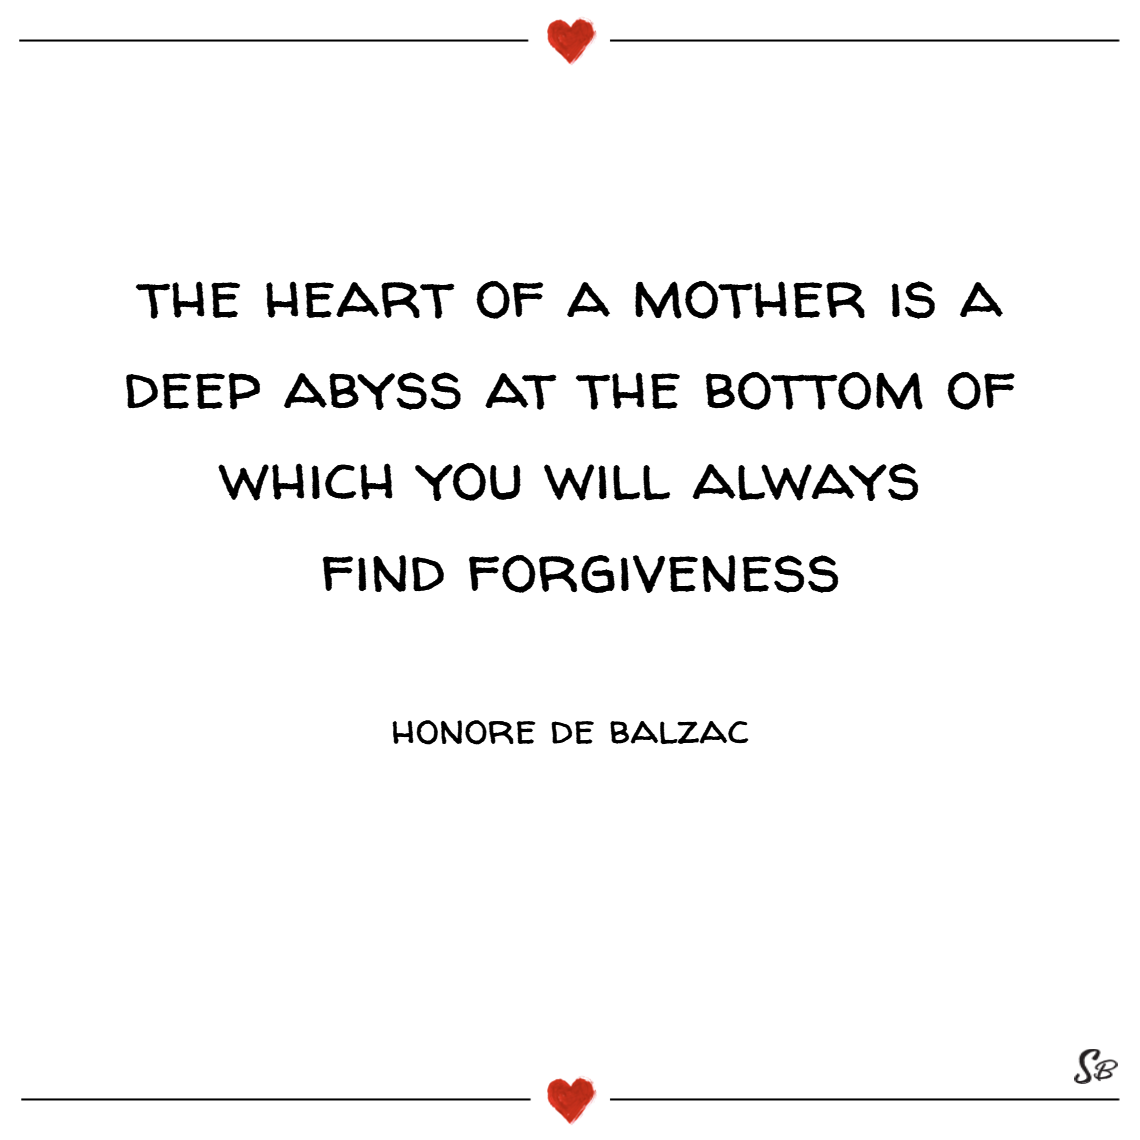 The heart of a mother is a deep abyss at the bottom of which you will always find forgiveness. – honore de balzac